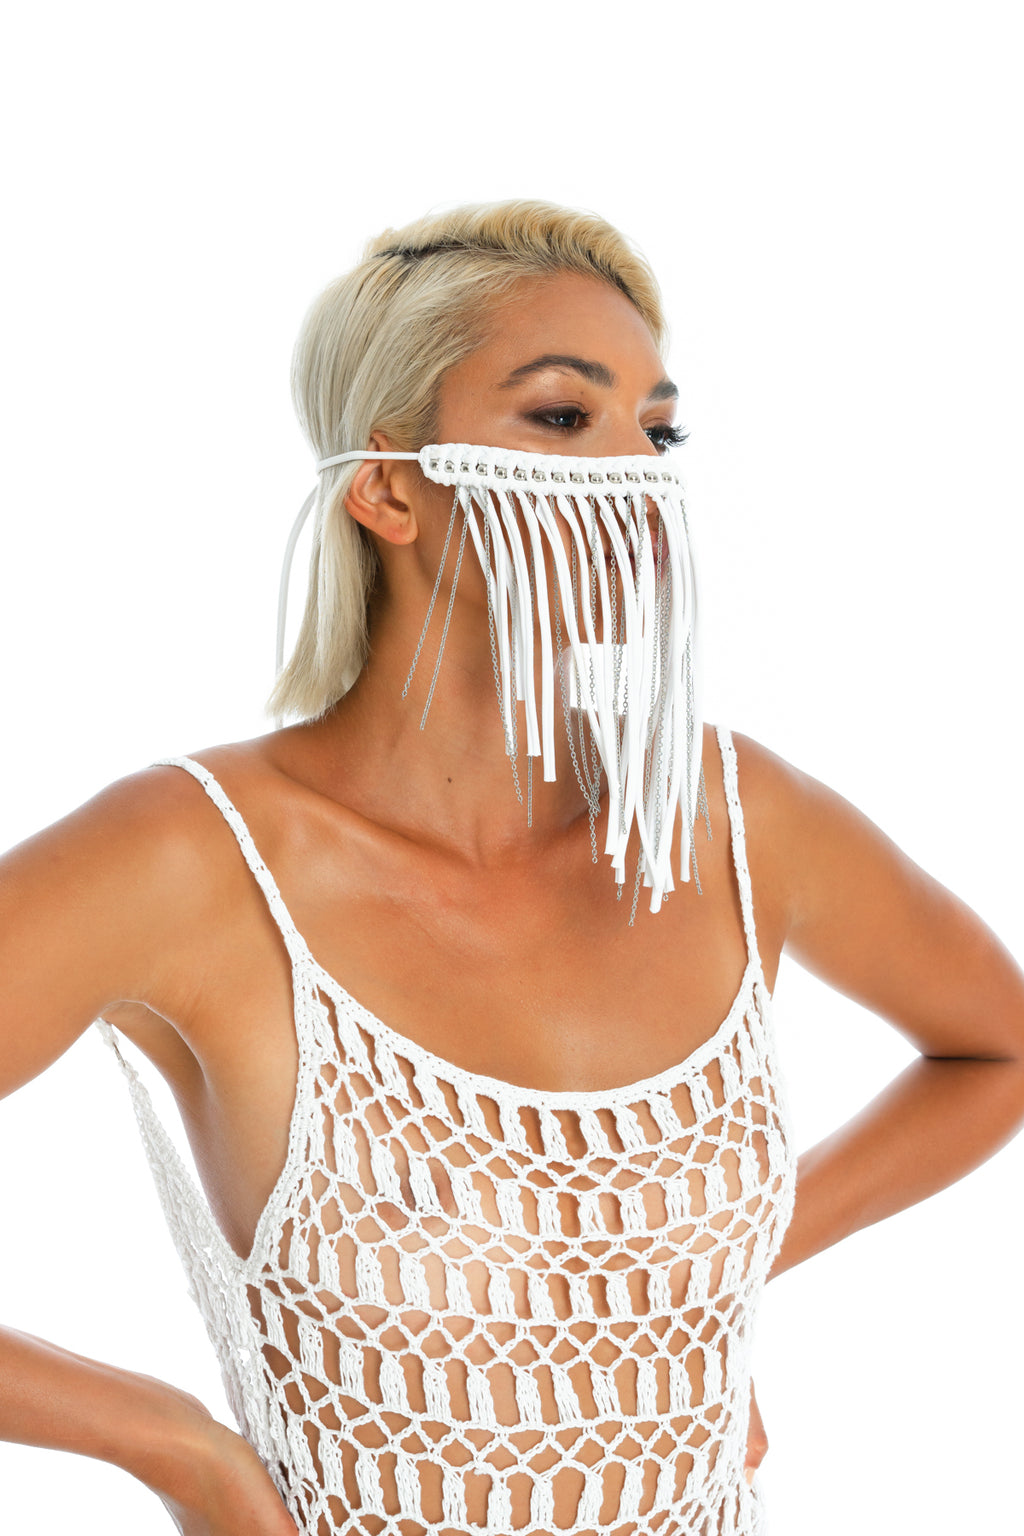 Face mask, unique macrame and chain body jewellery. white burning man accessory